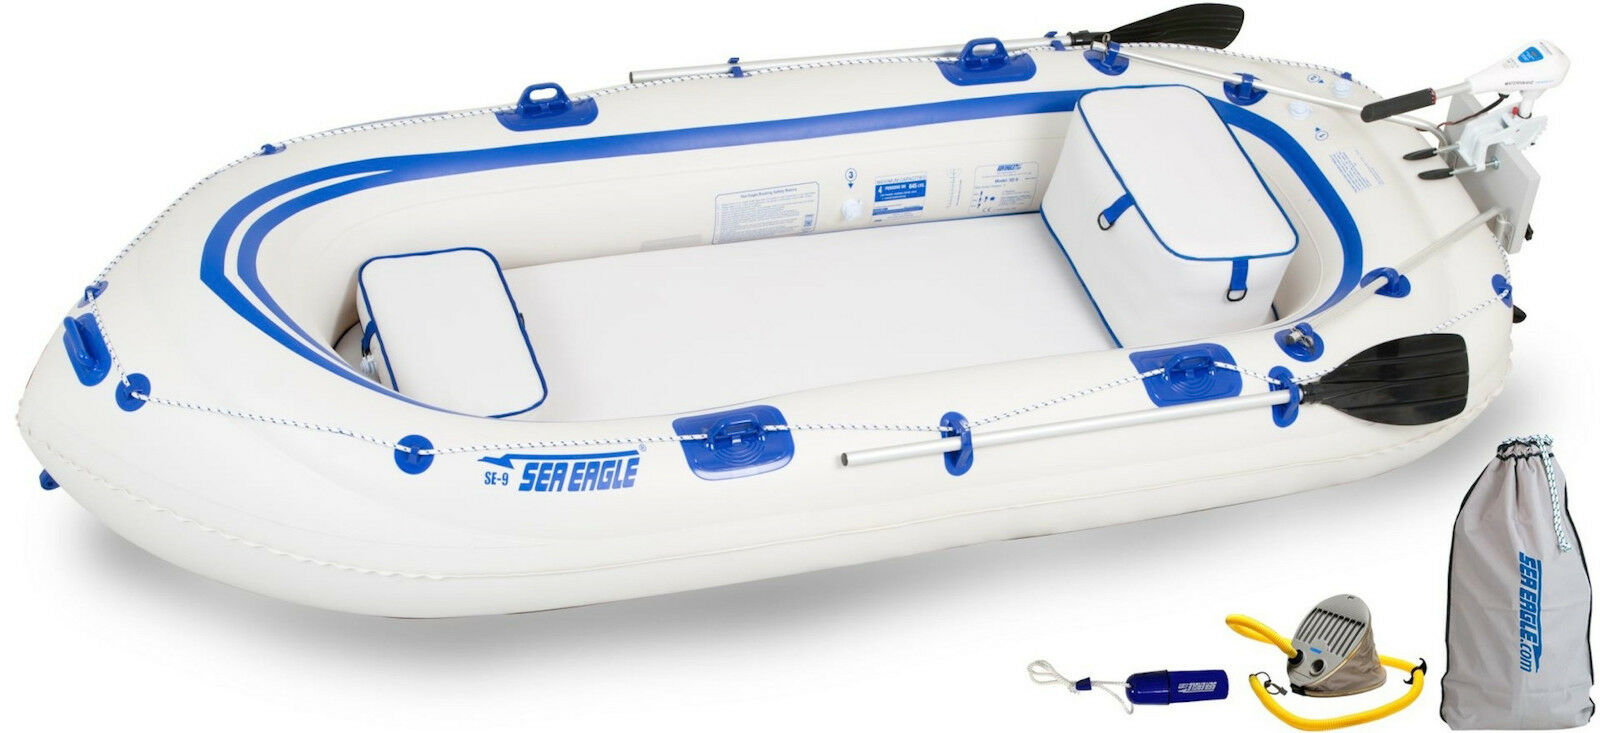 Sea Eagle Se9 Watersnake Motor Package Inflatable Runabout B